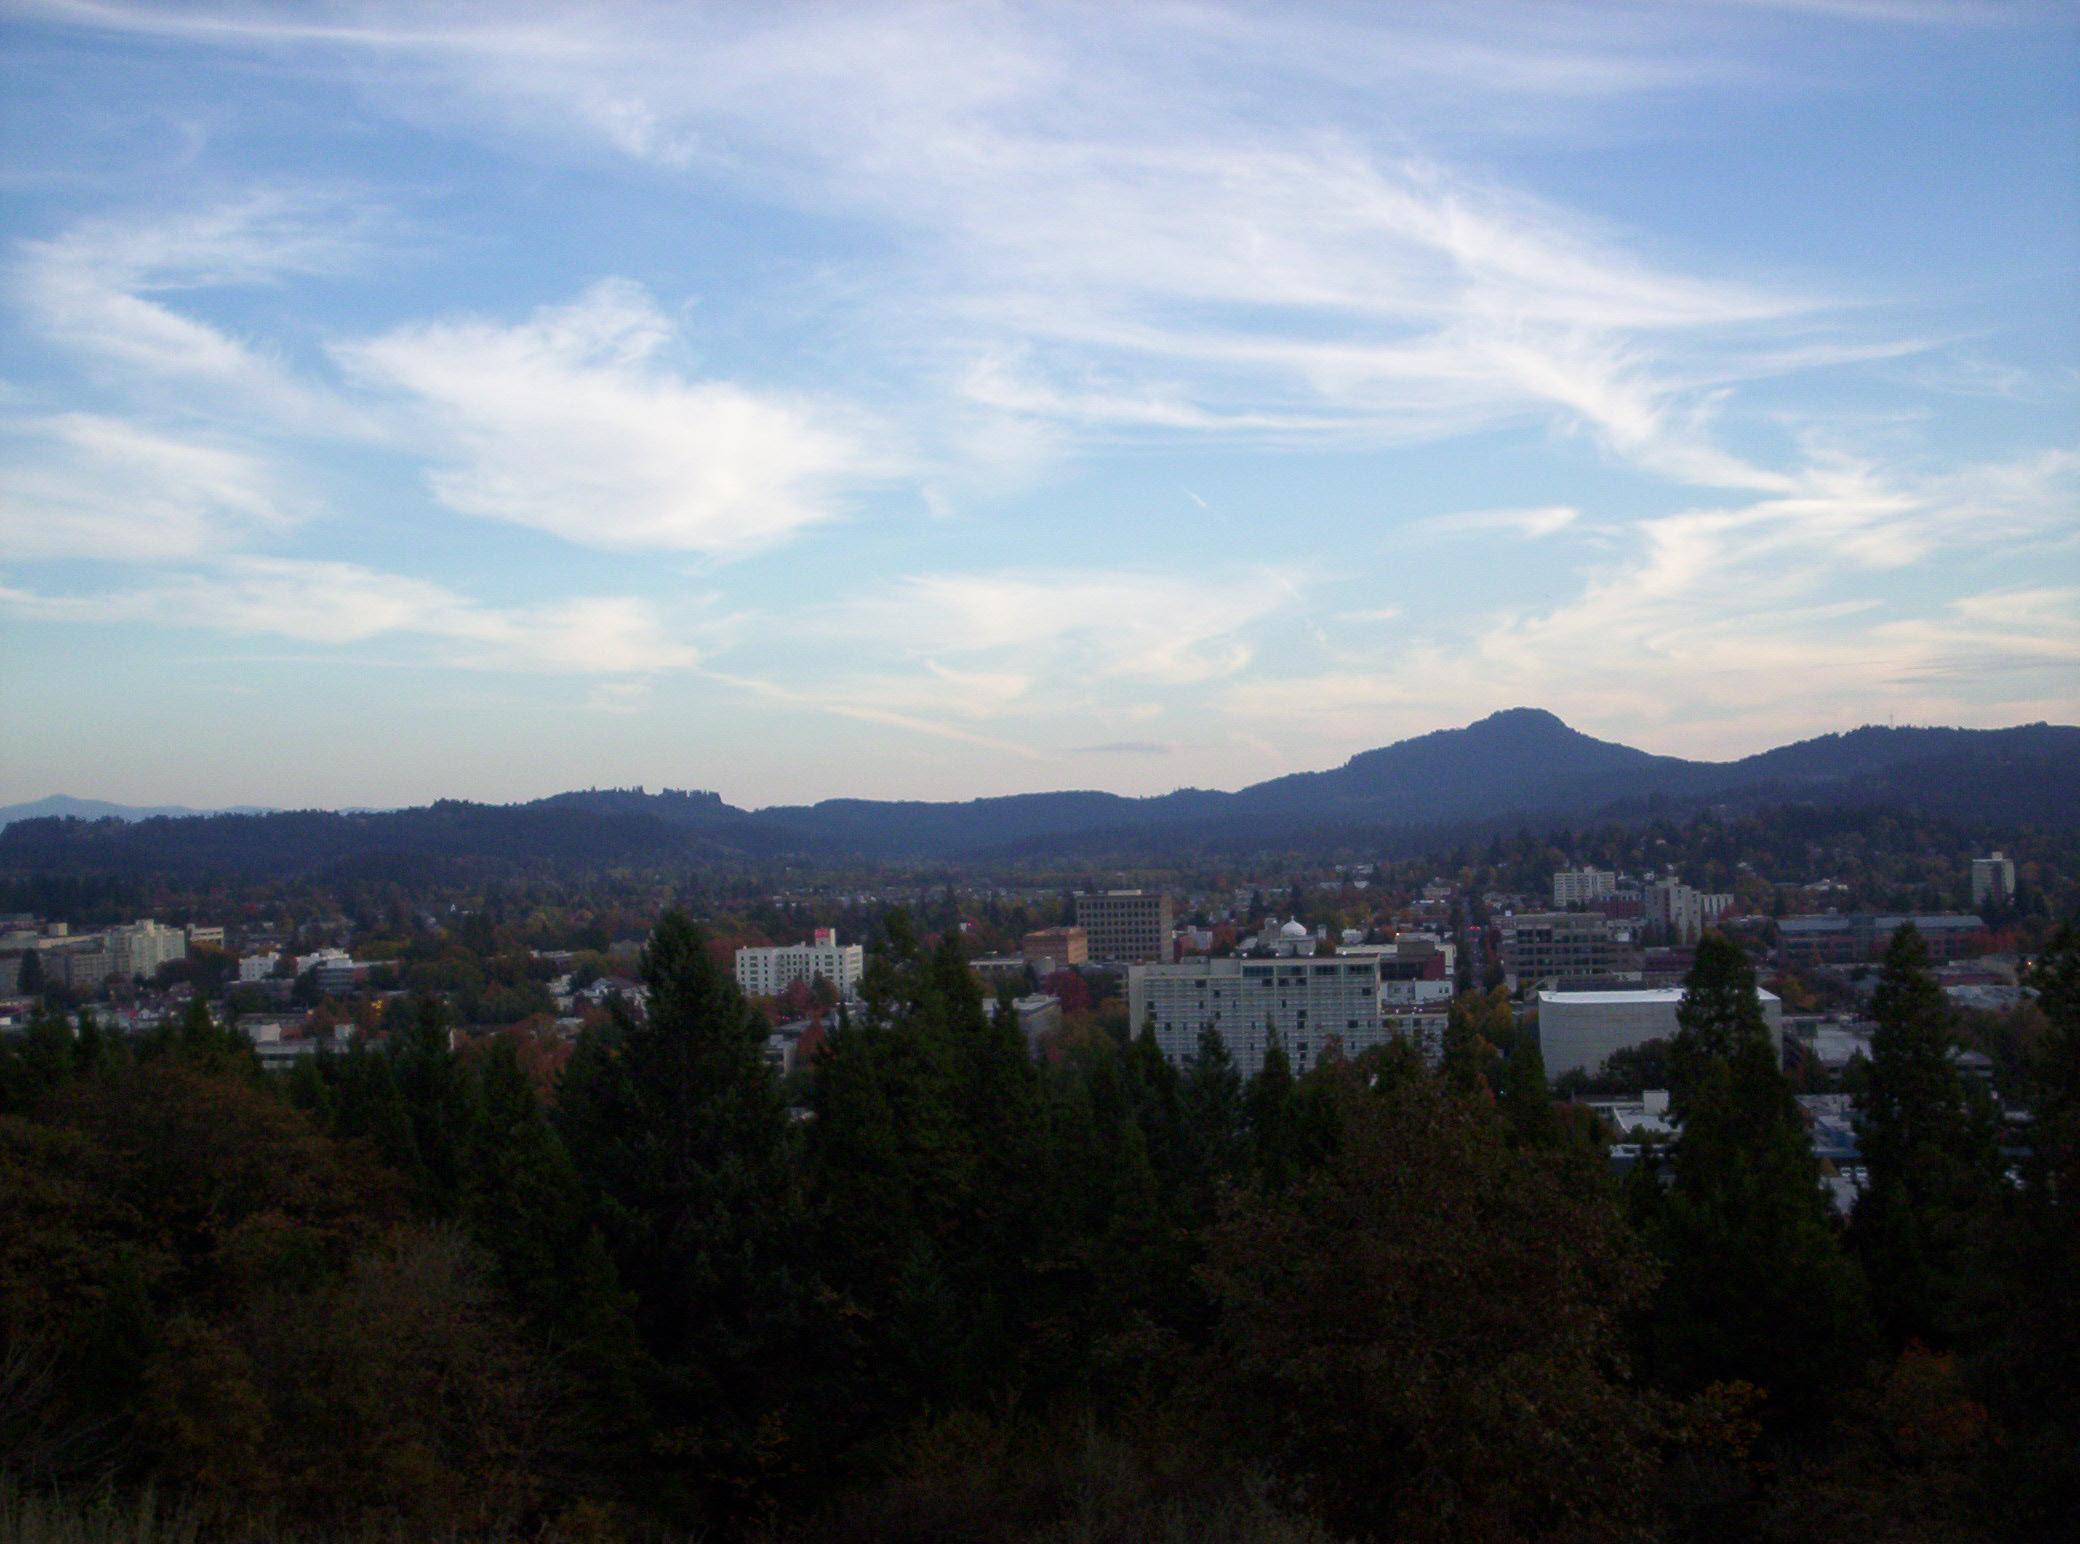 Eugene: the perfect balance of wild beauty and interesting town. At least to my taste.